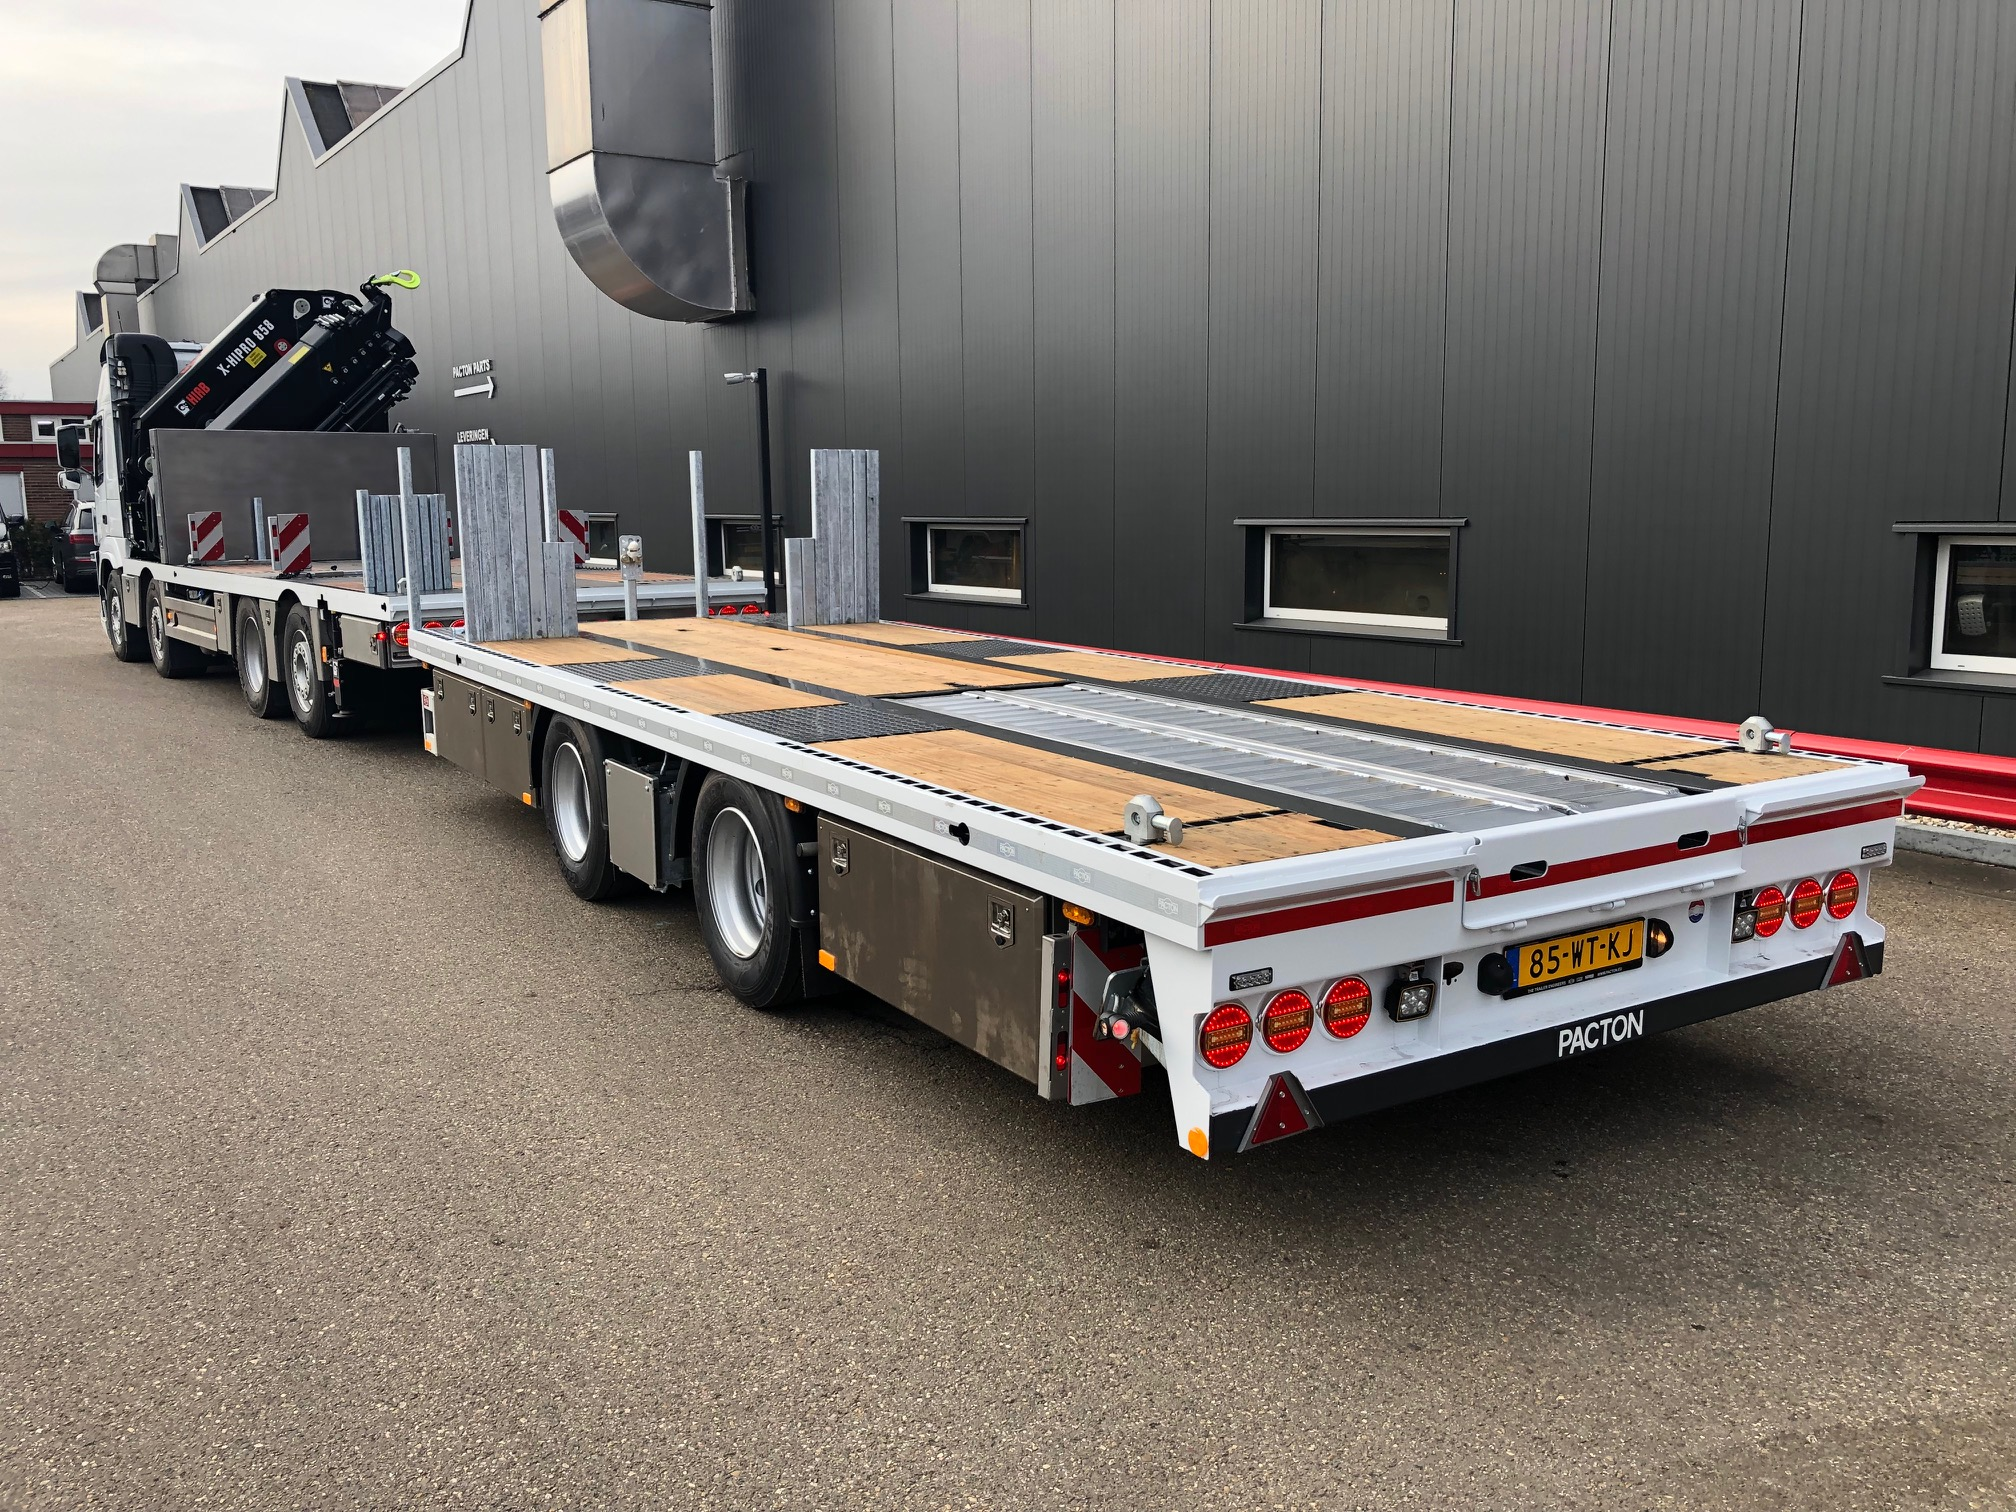 OPTIMAL UTILISABLE PACTON CENTRE AXLE DRAWBAR TRAILER FOR SIERS OLDENZAAL